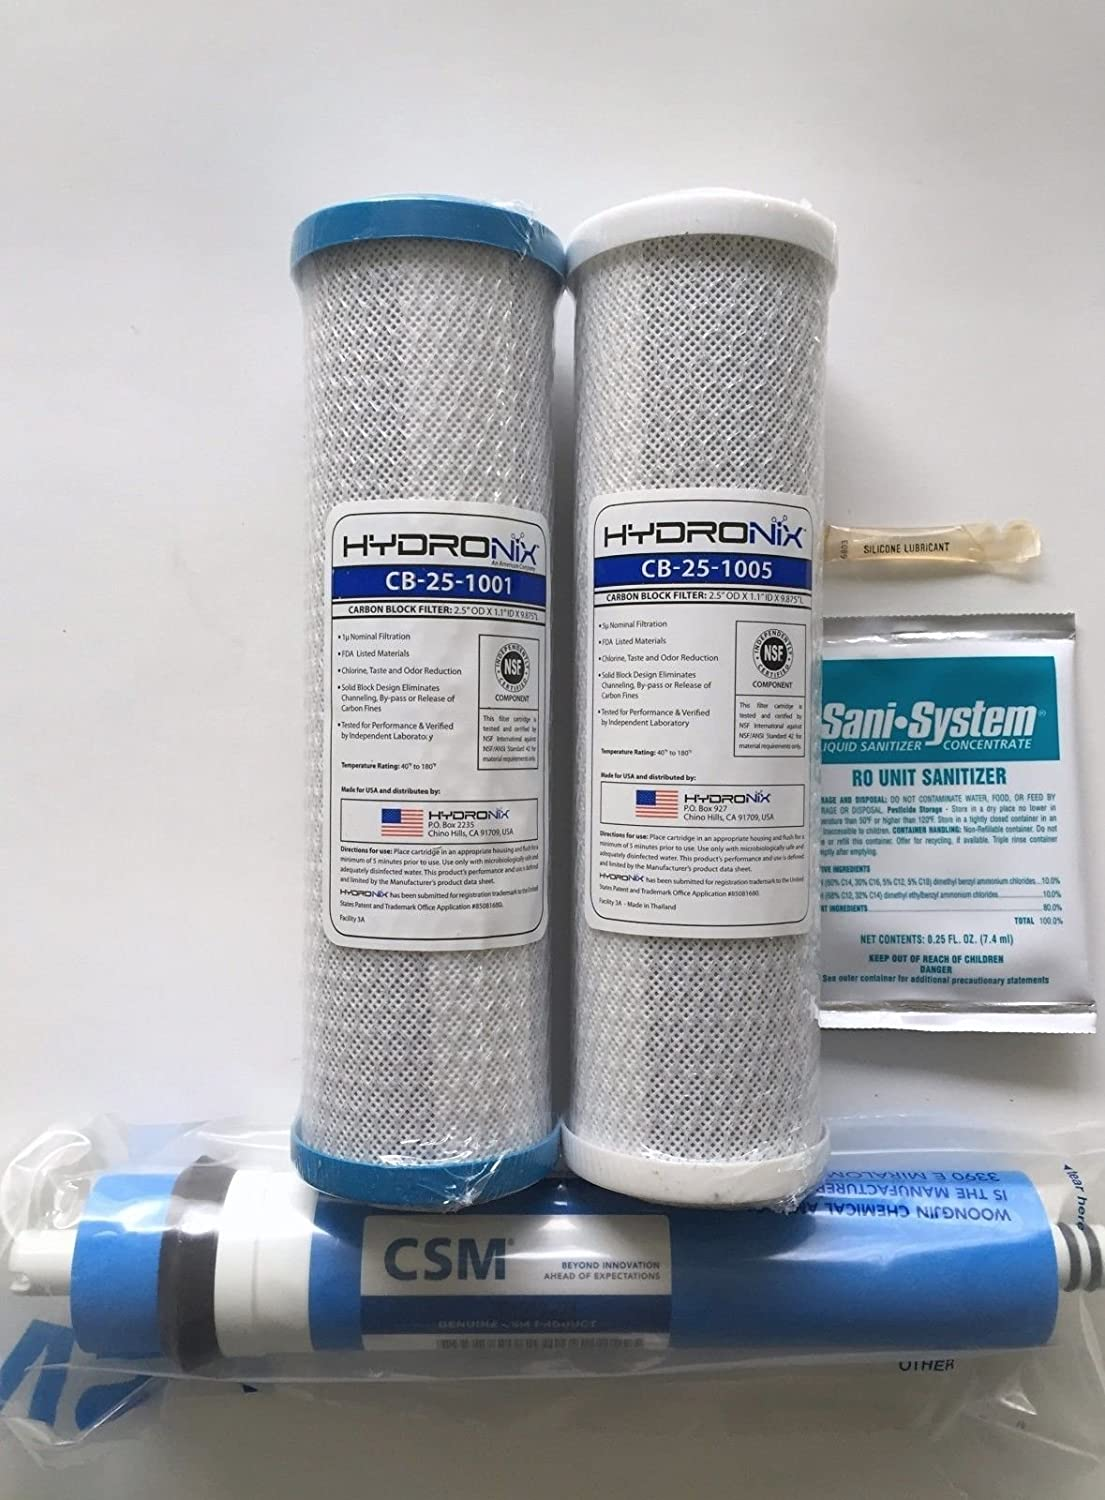 GE SMART WATER REVERSE OSMOSIS GXRM10G PRE & POST FILTERS 50 GPD GE FXWTX GE FX12P GE FX12M ANNUAL RO REPLACEMENT FILTER PACK